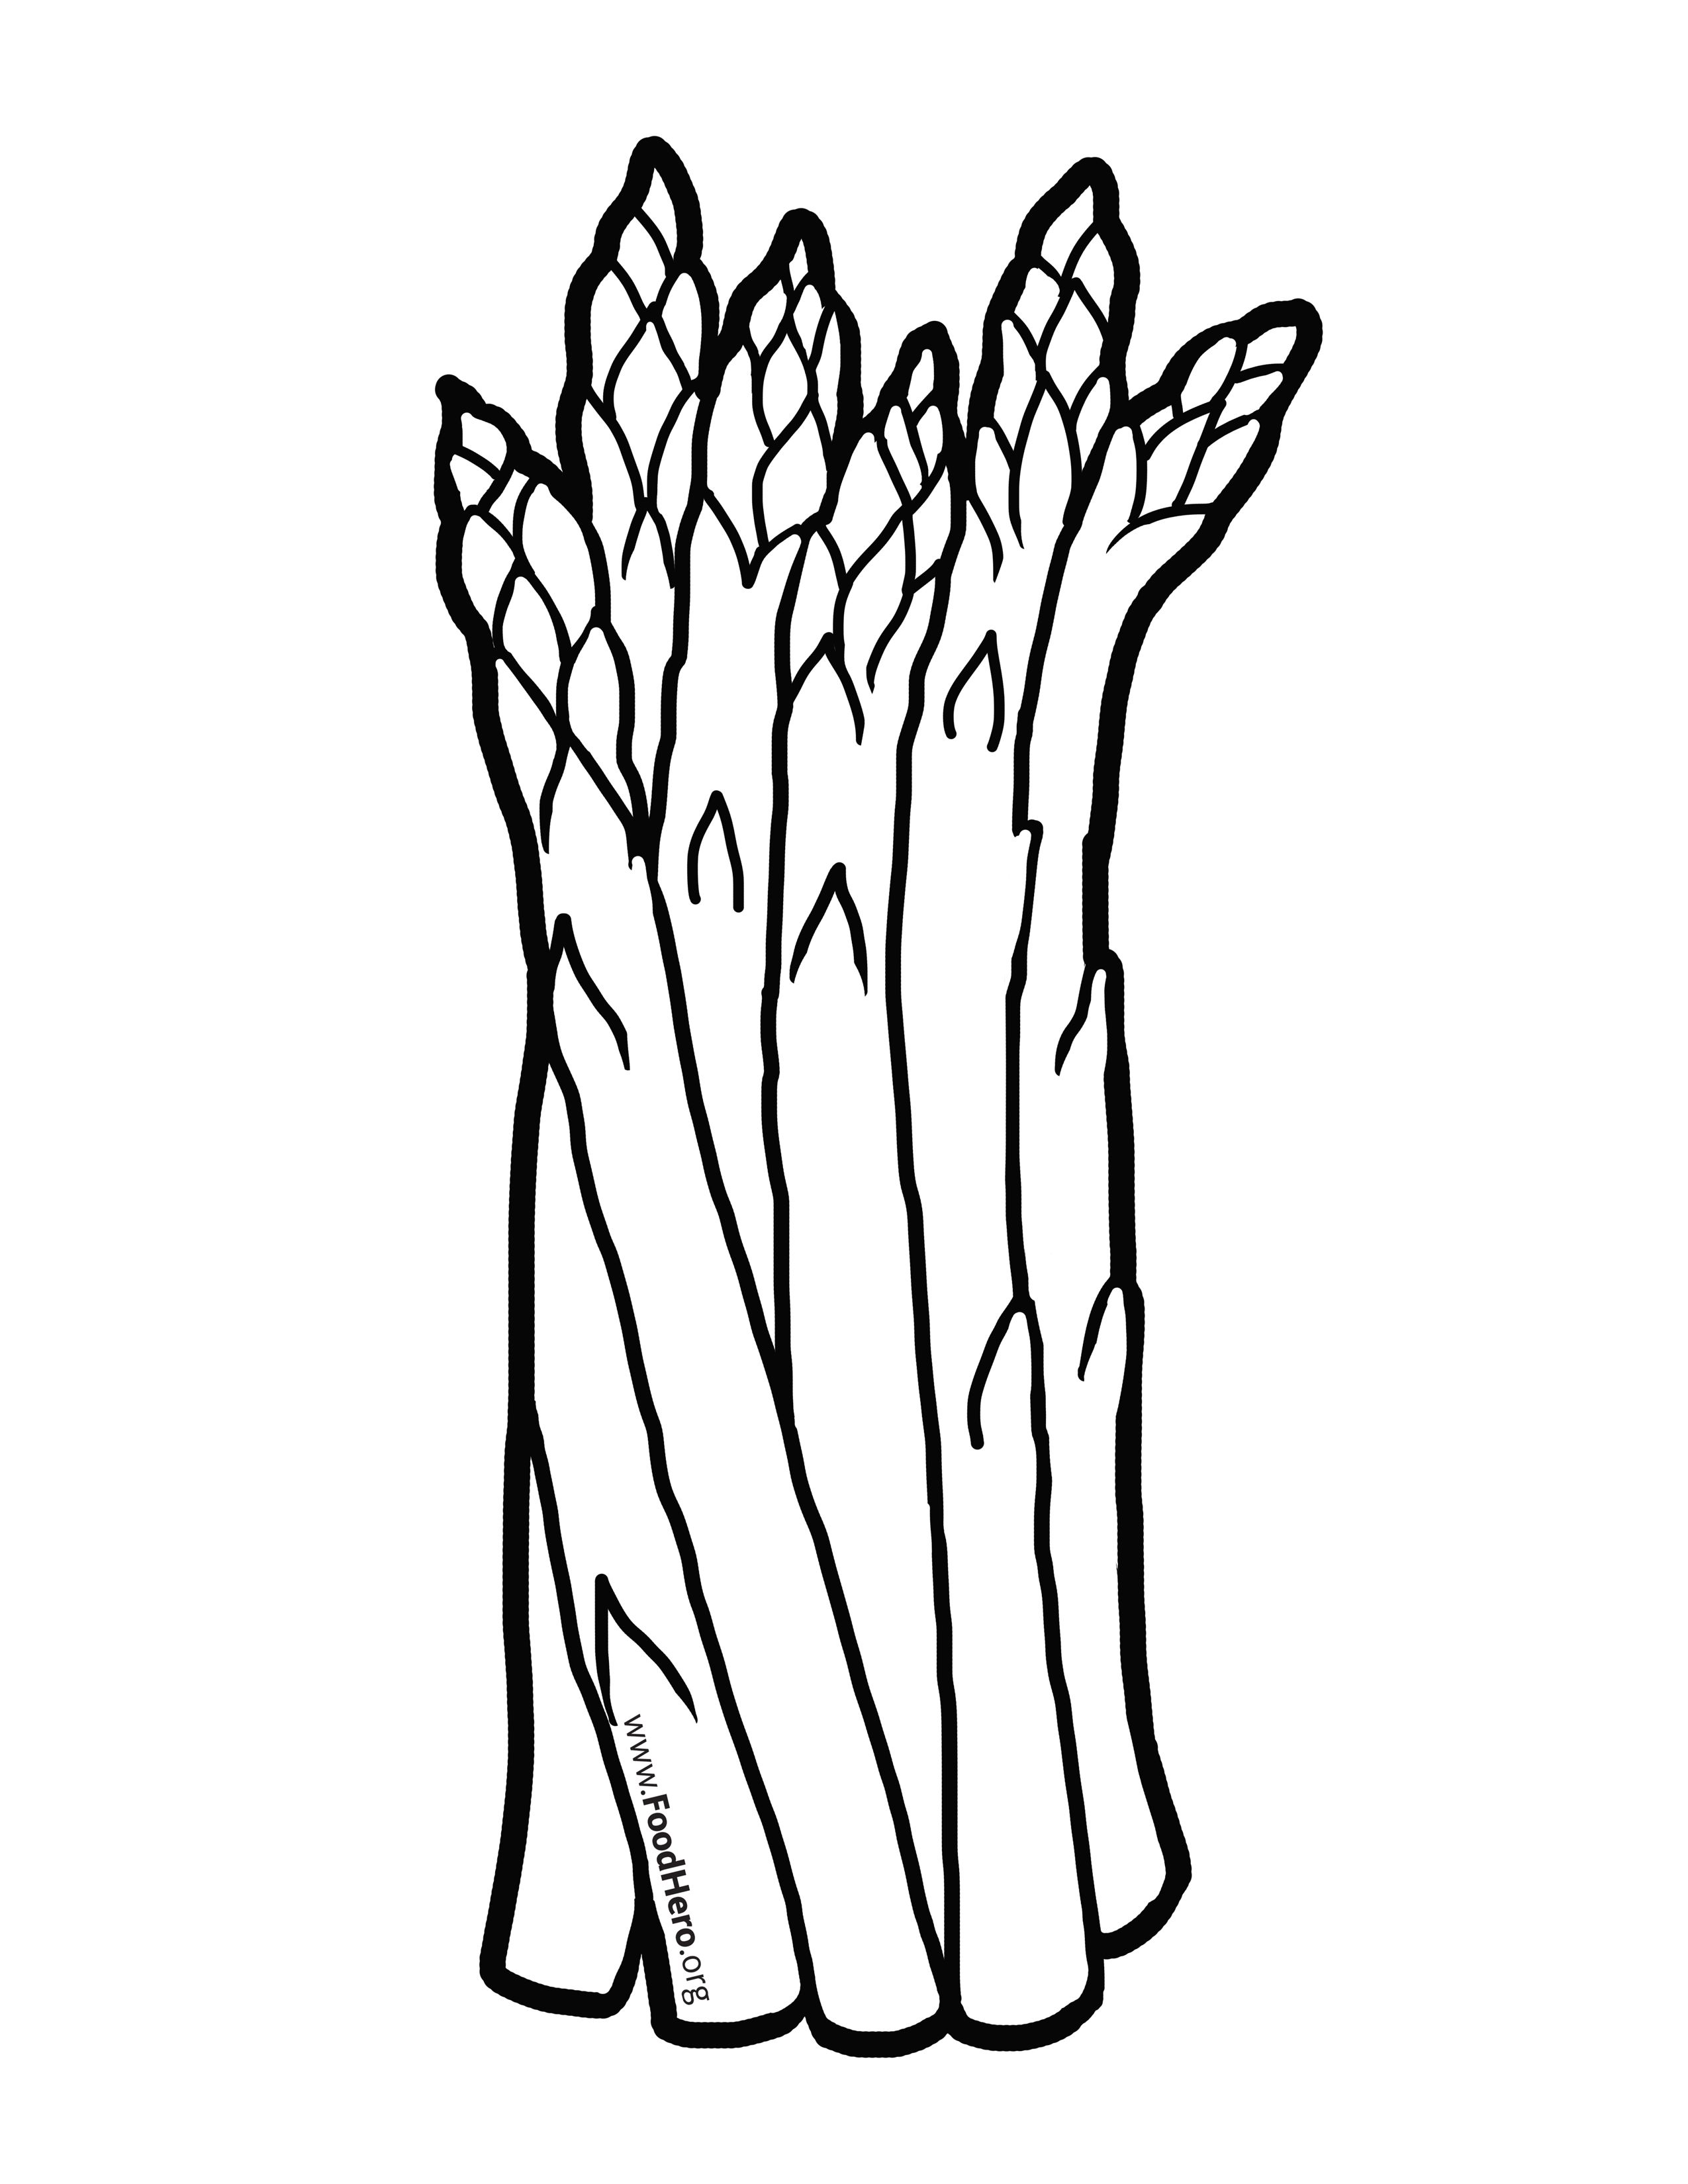 Celery Night Fever Coloring Pages Activites Veggietales Com